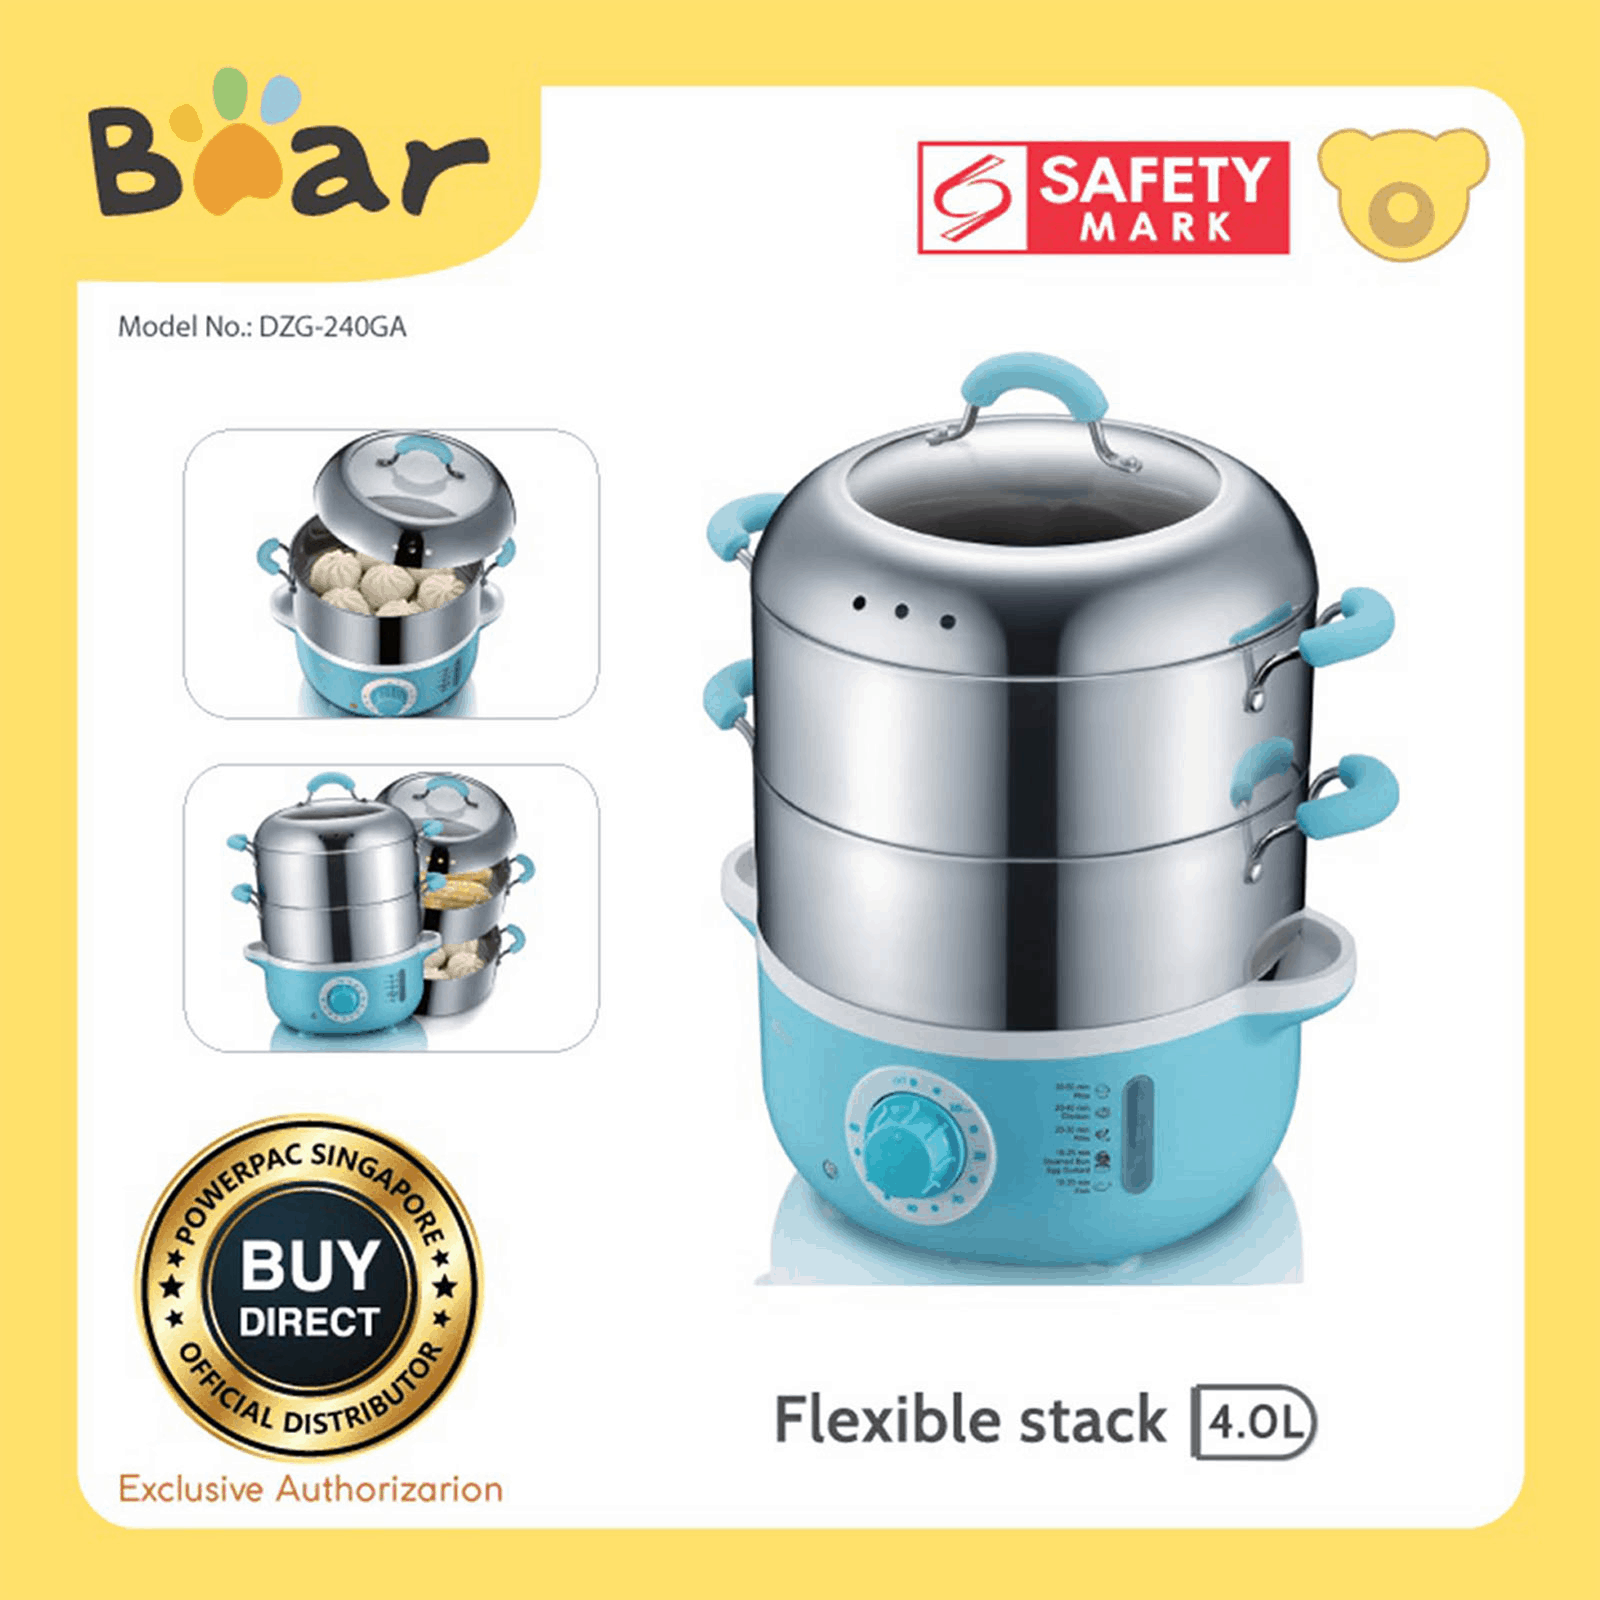 Authorised Stainless Steel Food Steamer Singapore, fun, safe and easy to use